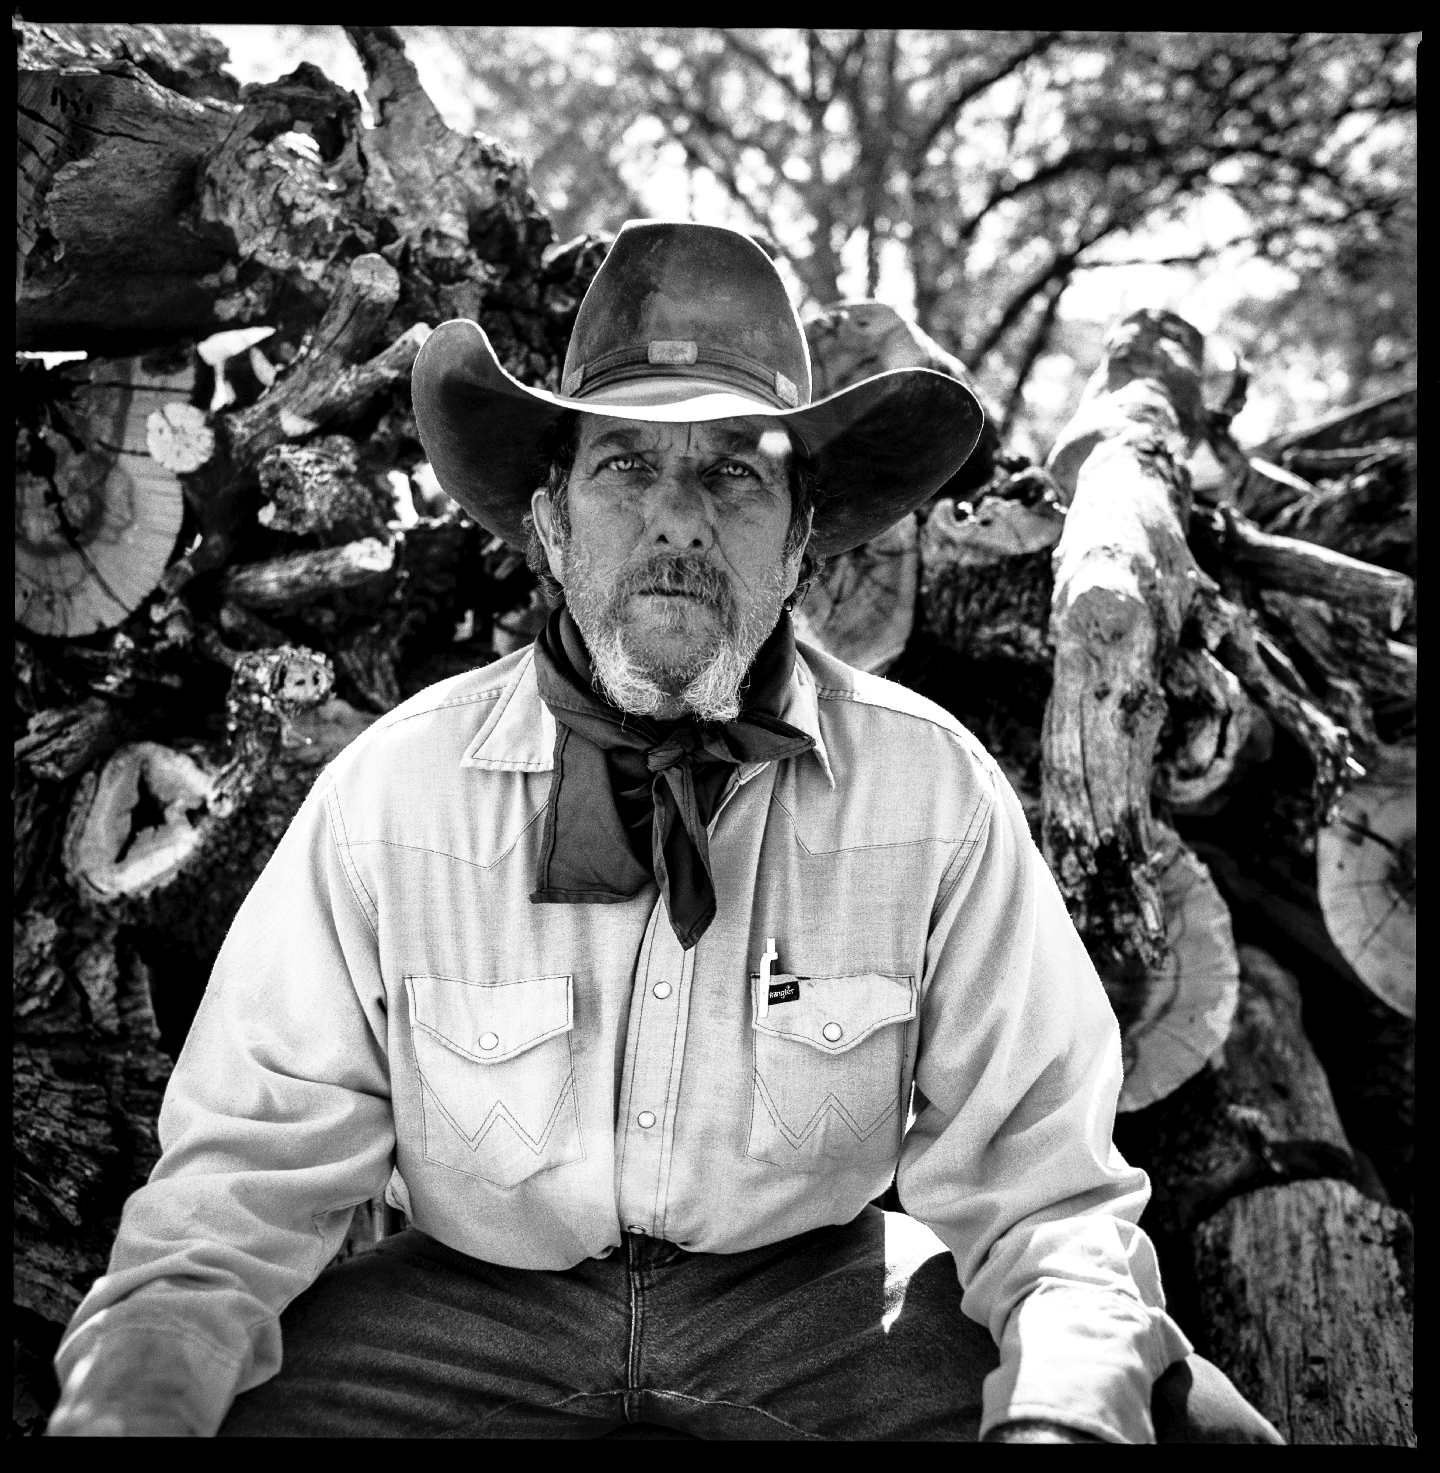 At a cowboy breakfast  Brewster County, Texas 2012   Made with Hasselblad 501c with Kodak Tri-X 400 b&w film